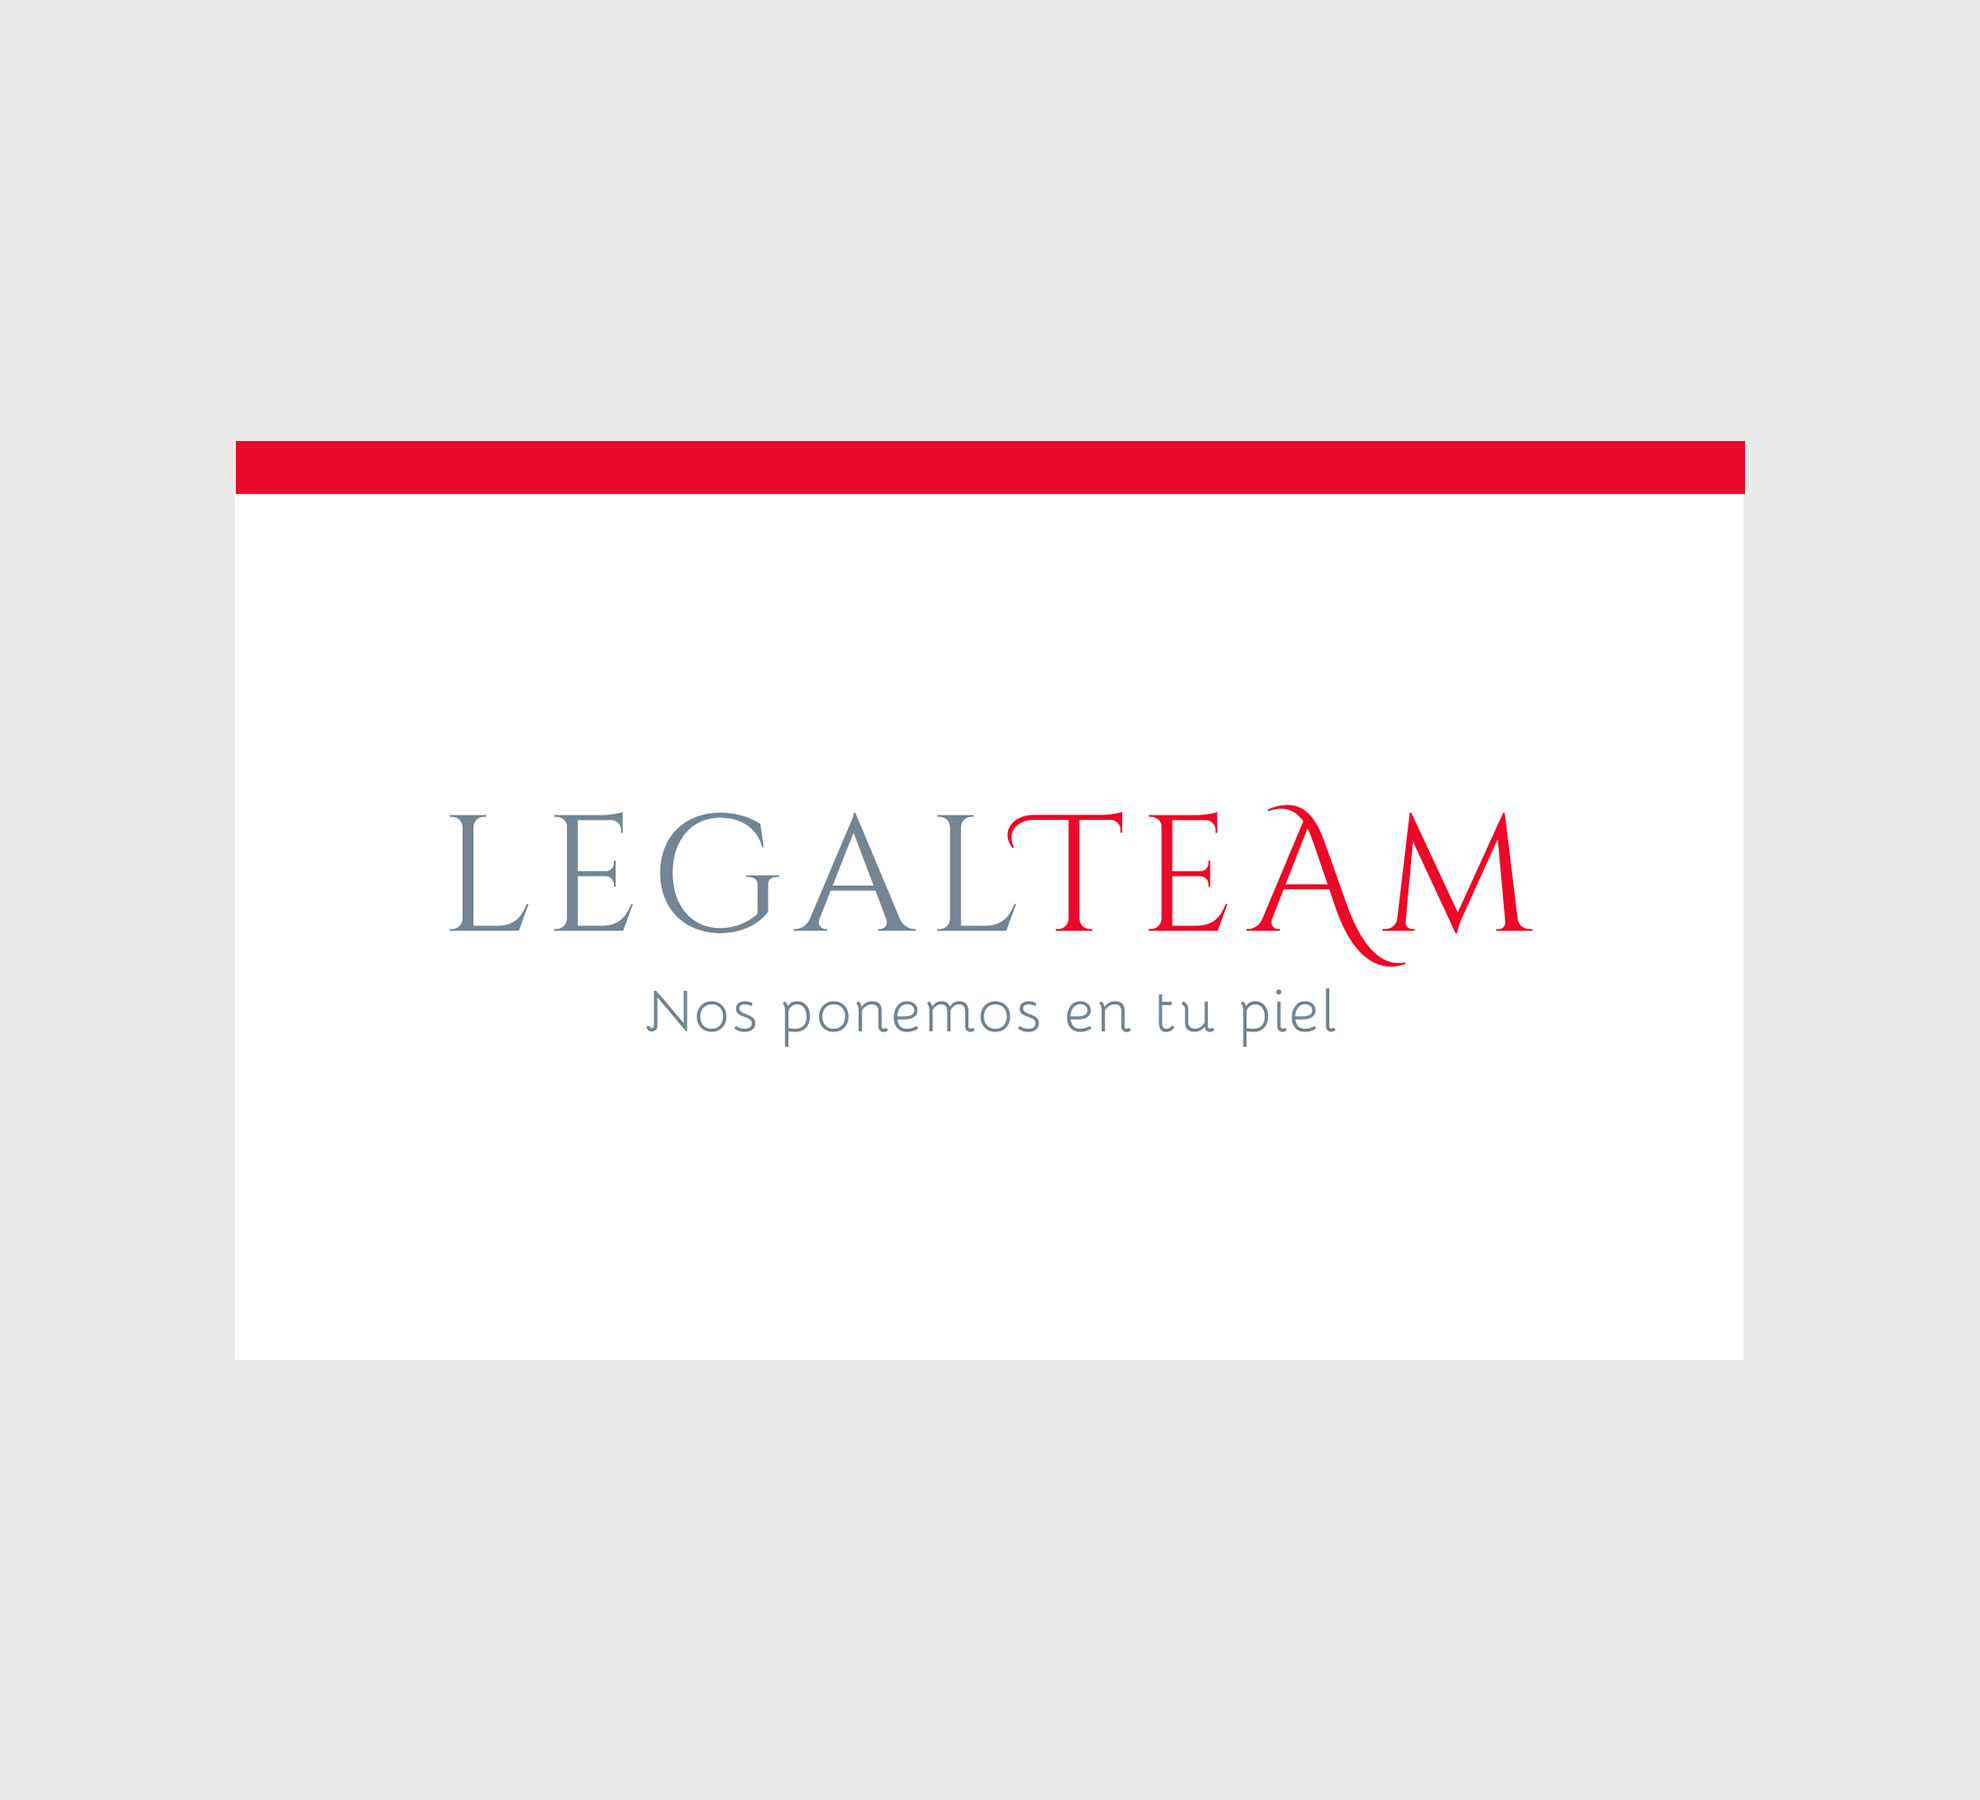 logotipo legalteam